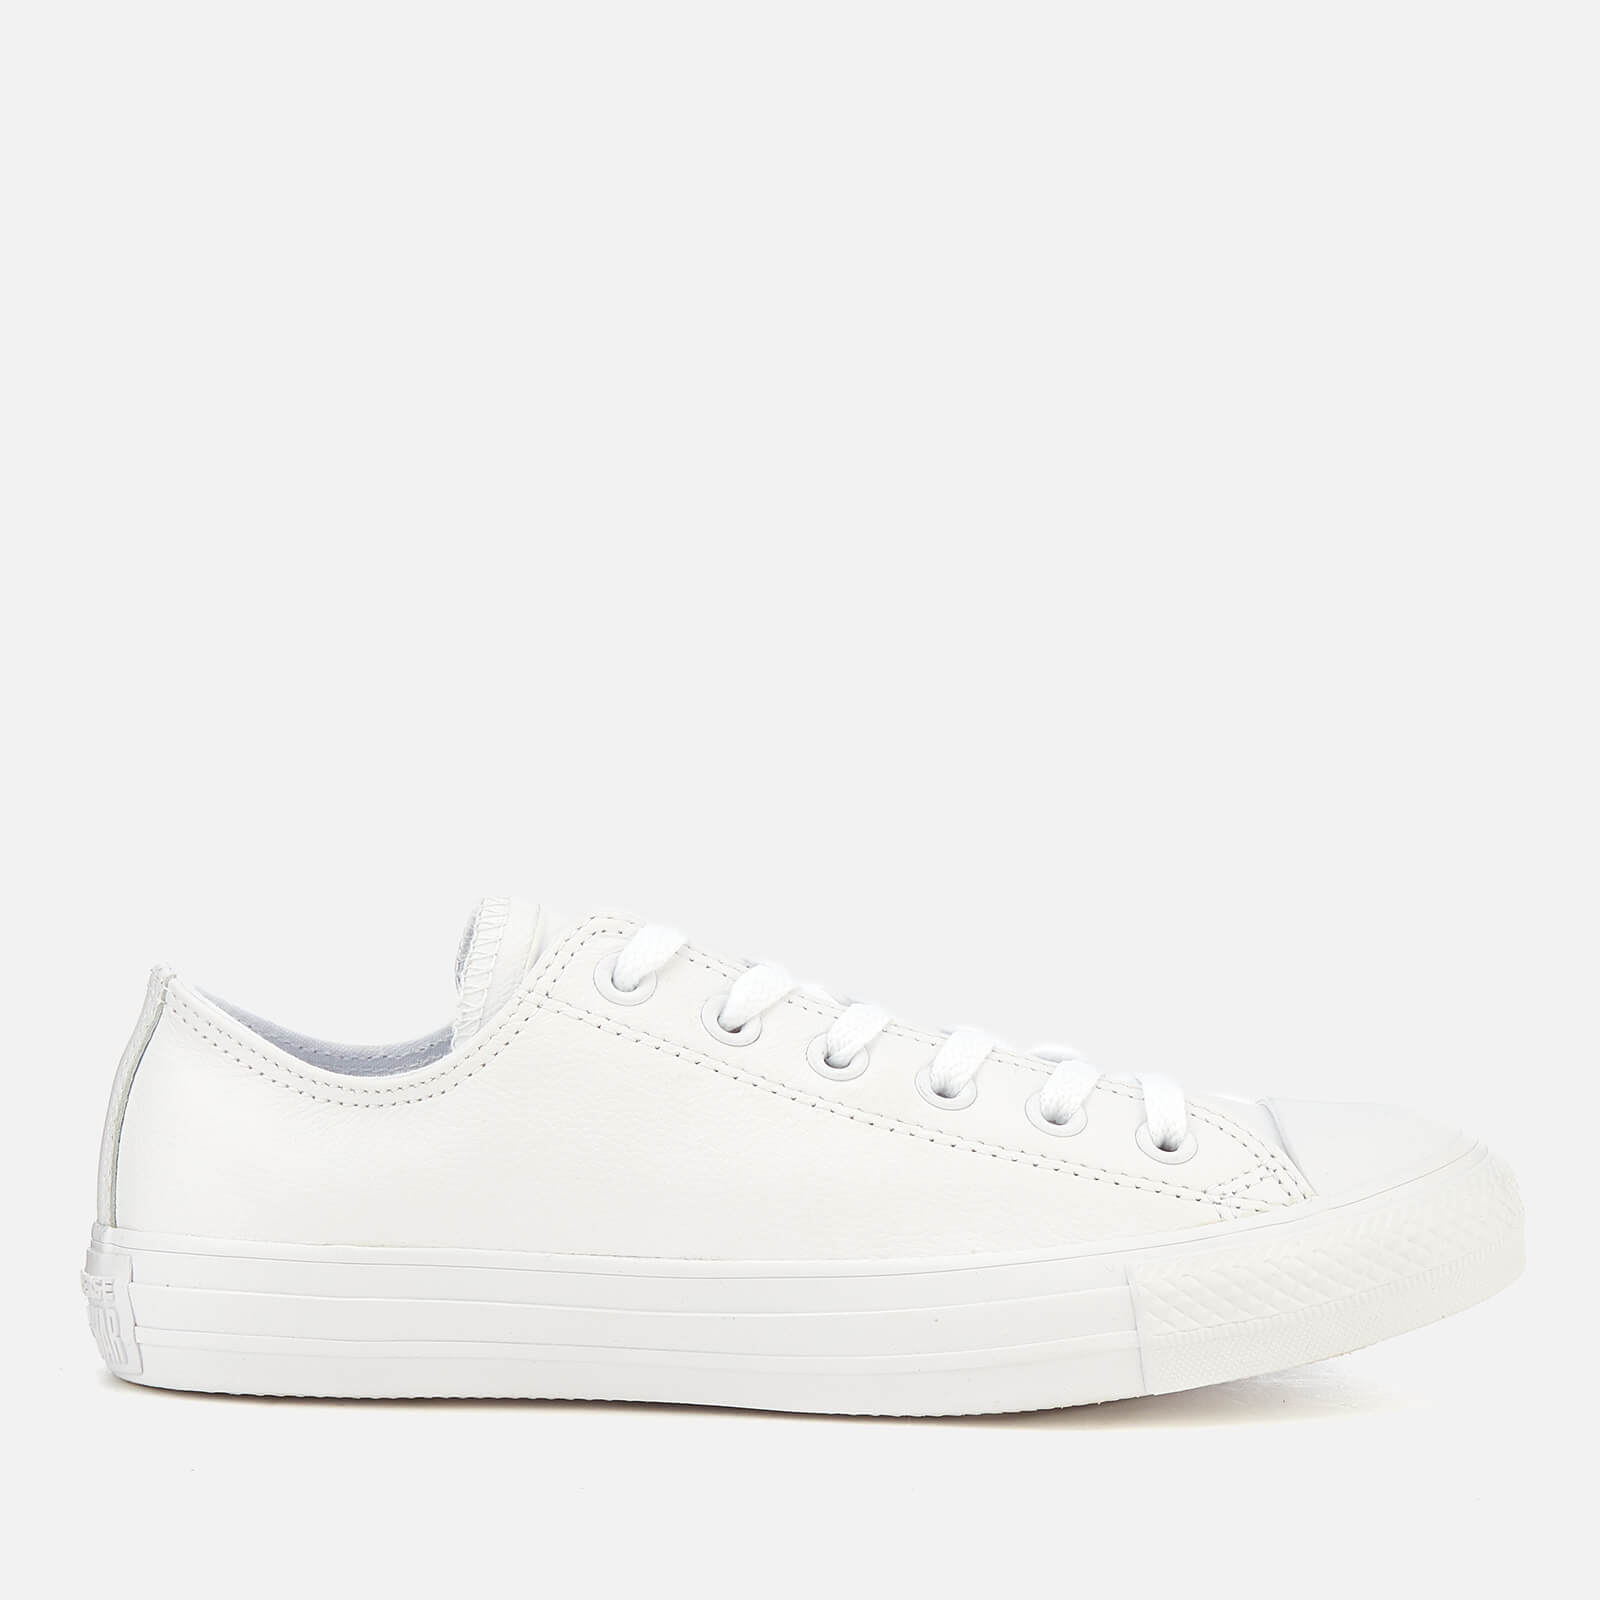 9efe611d9fabc2 Converse Chuck Taylor All Star Ox Leather Trainers - White Monochrome Mens  Footwear